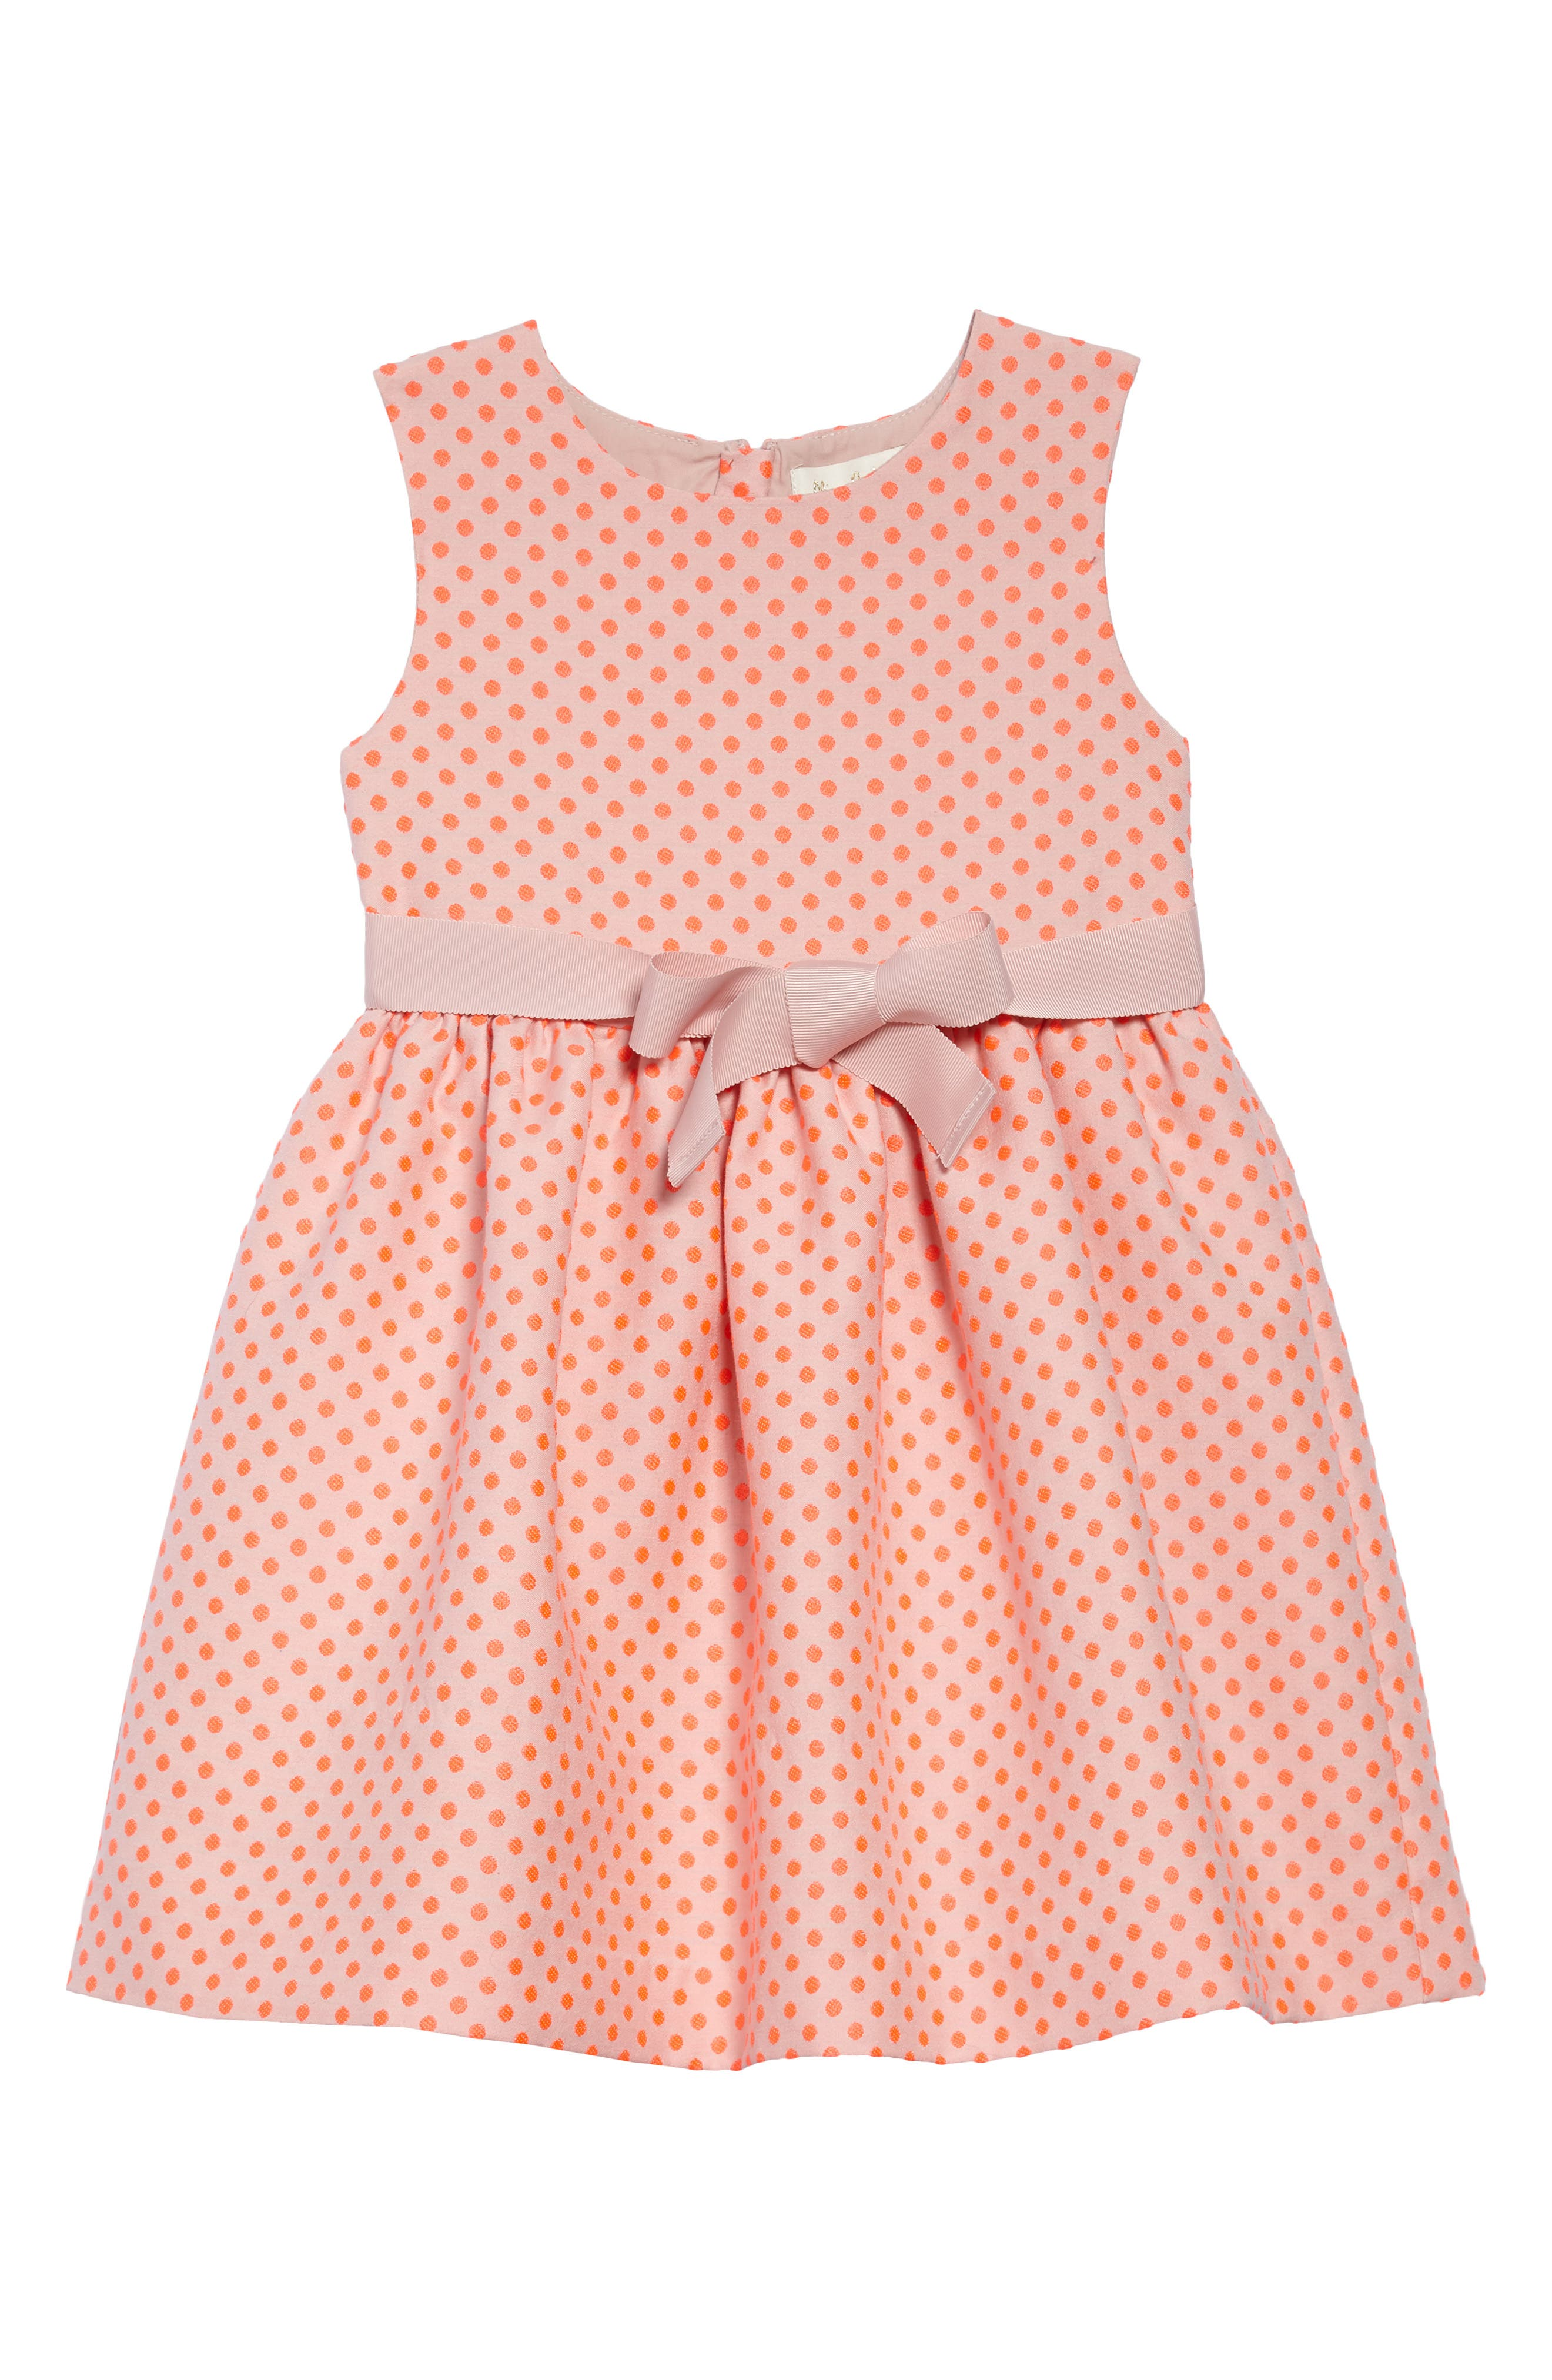 Main Image - Mini Boden Dot Sleeveless Dress (Toddler Girls, Little Girls & Big Girls)